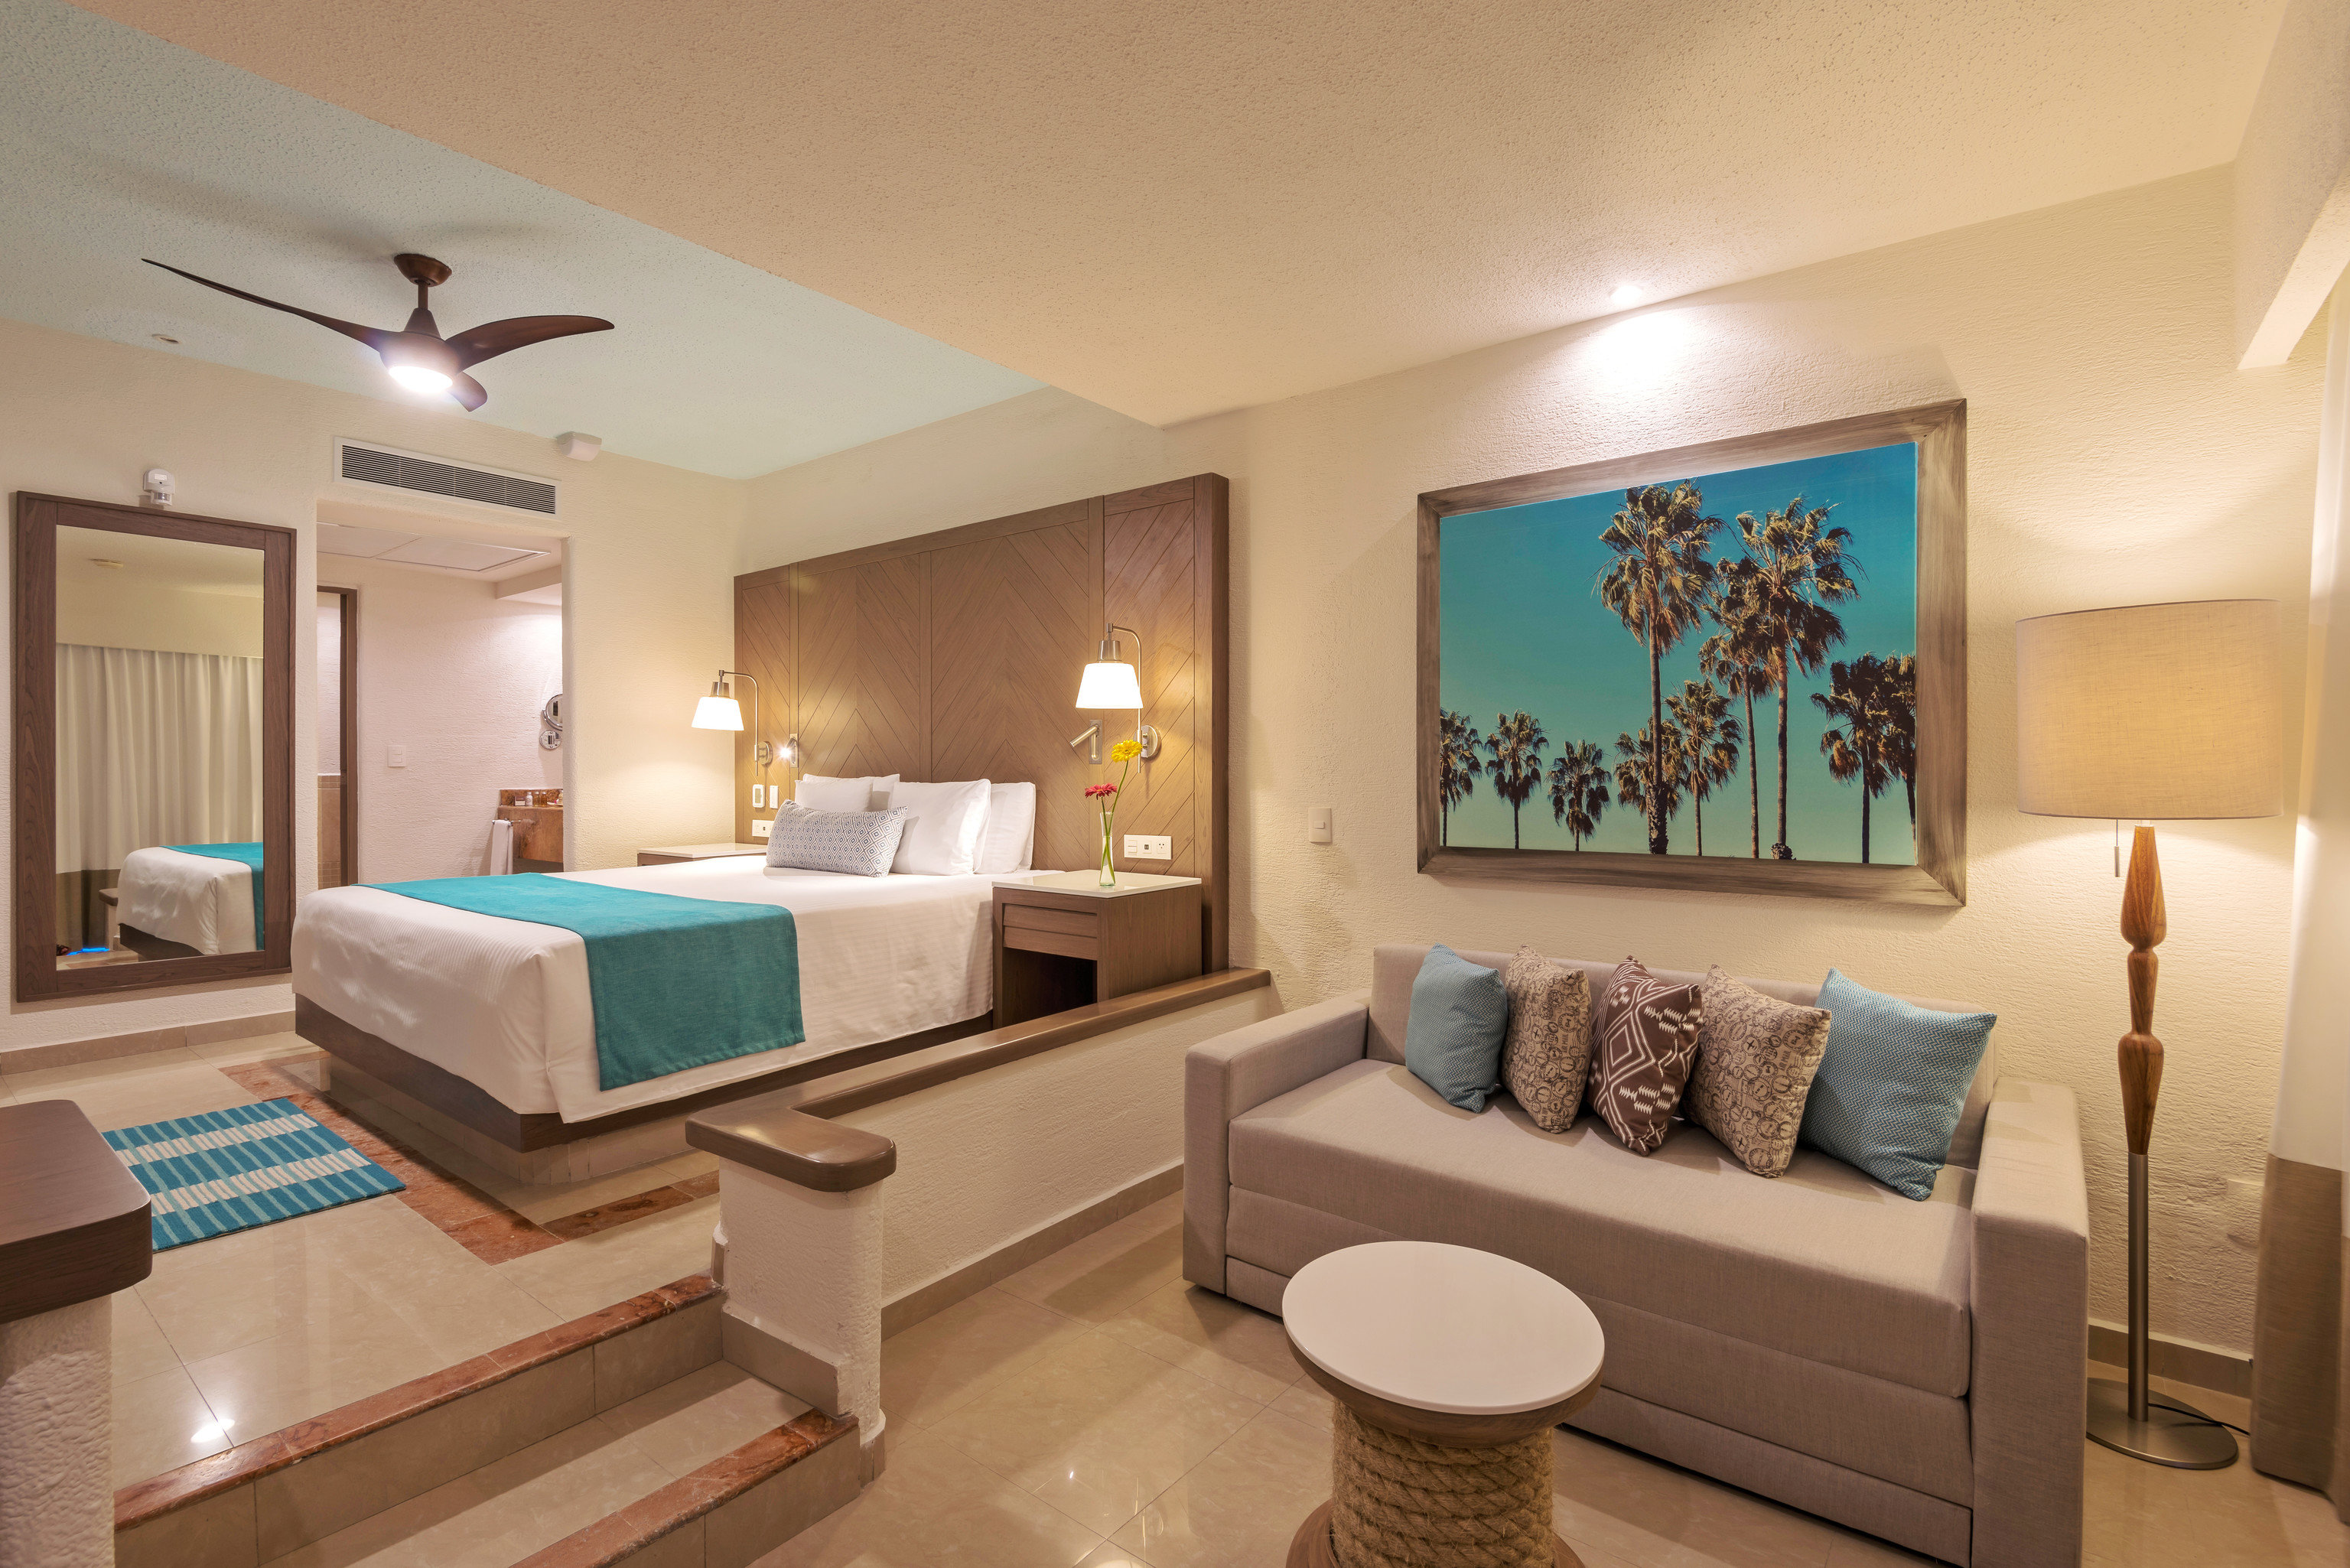 All-Inclusive Resorts caribbean Family Travel Hotels wall indoor ceiling floor room interior design living room Suite Living real estate estate Bedroom interior designer hotel furniture